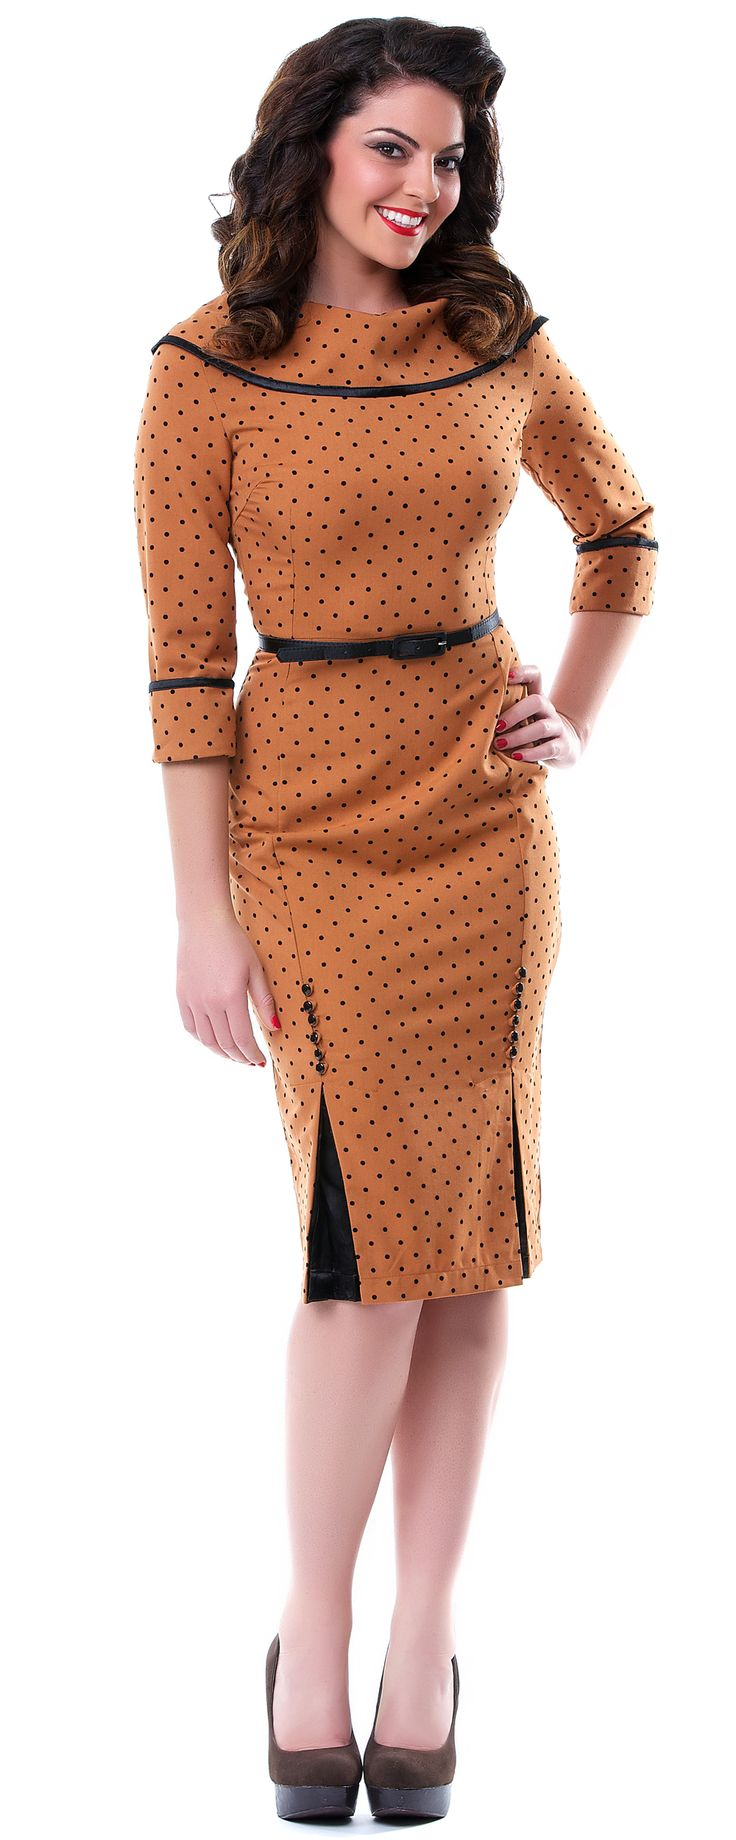 Ice Coffee Rust & Polka Dot Wiggle Dress - Unique Vintage - Pinup, Holiday & Prom Dresses.